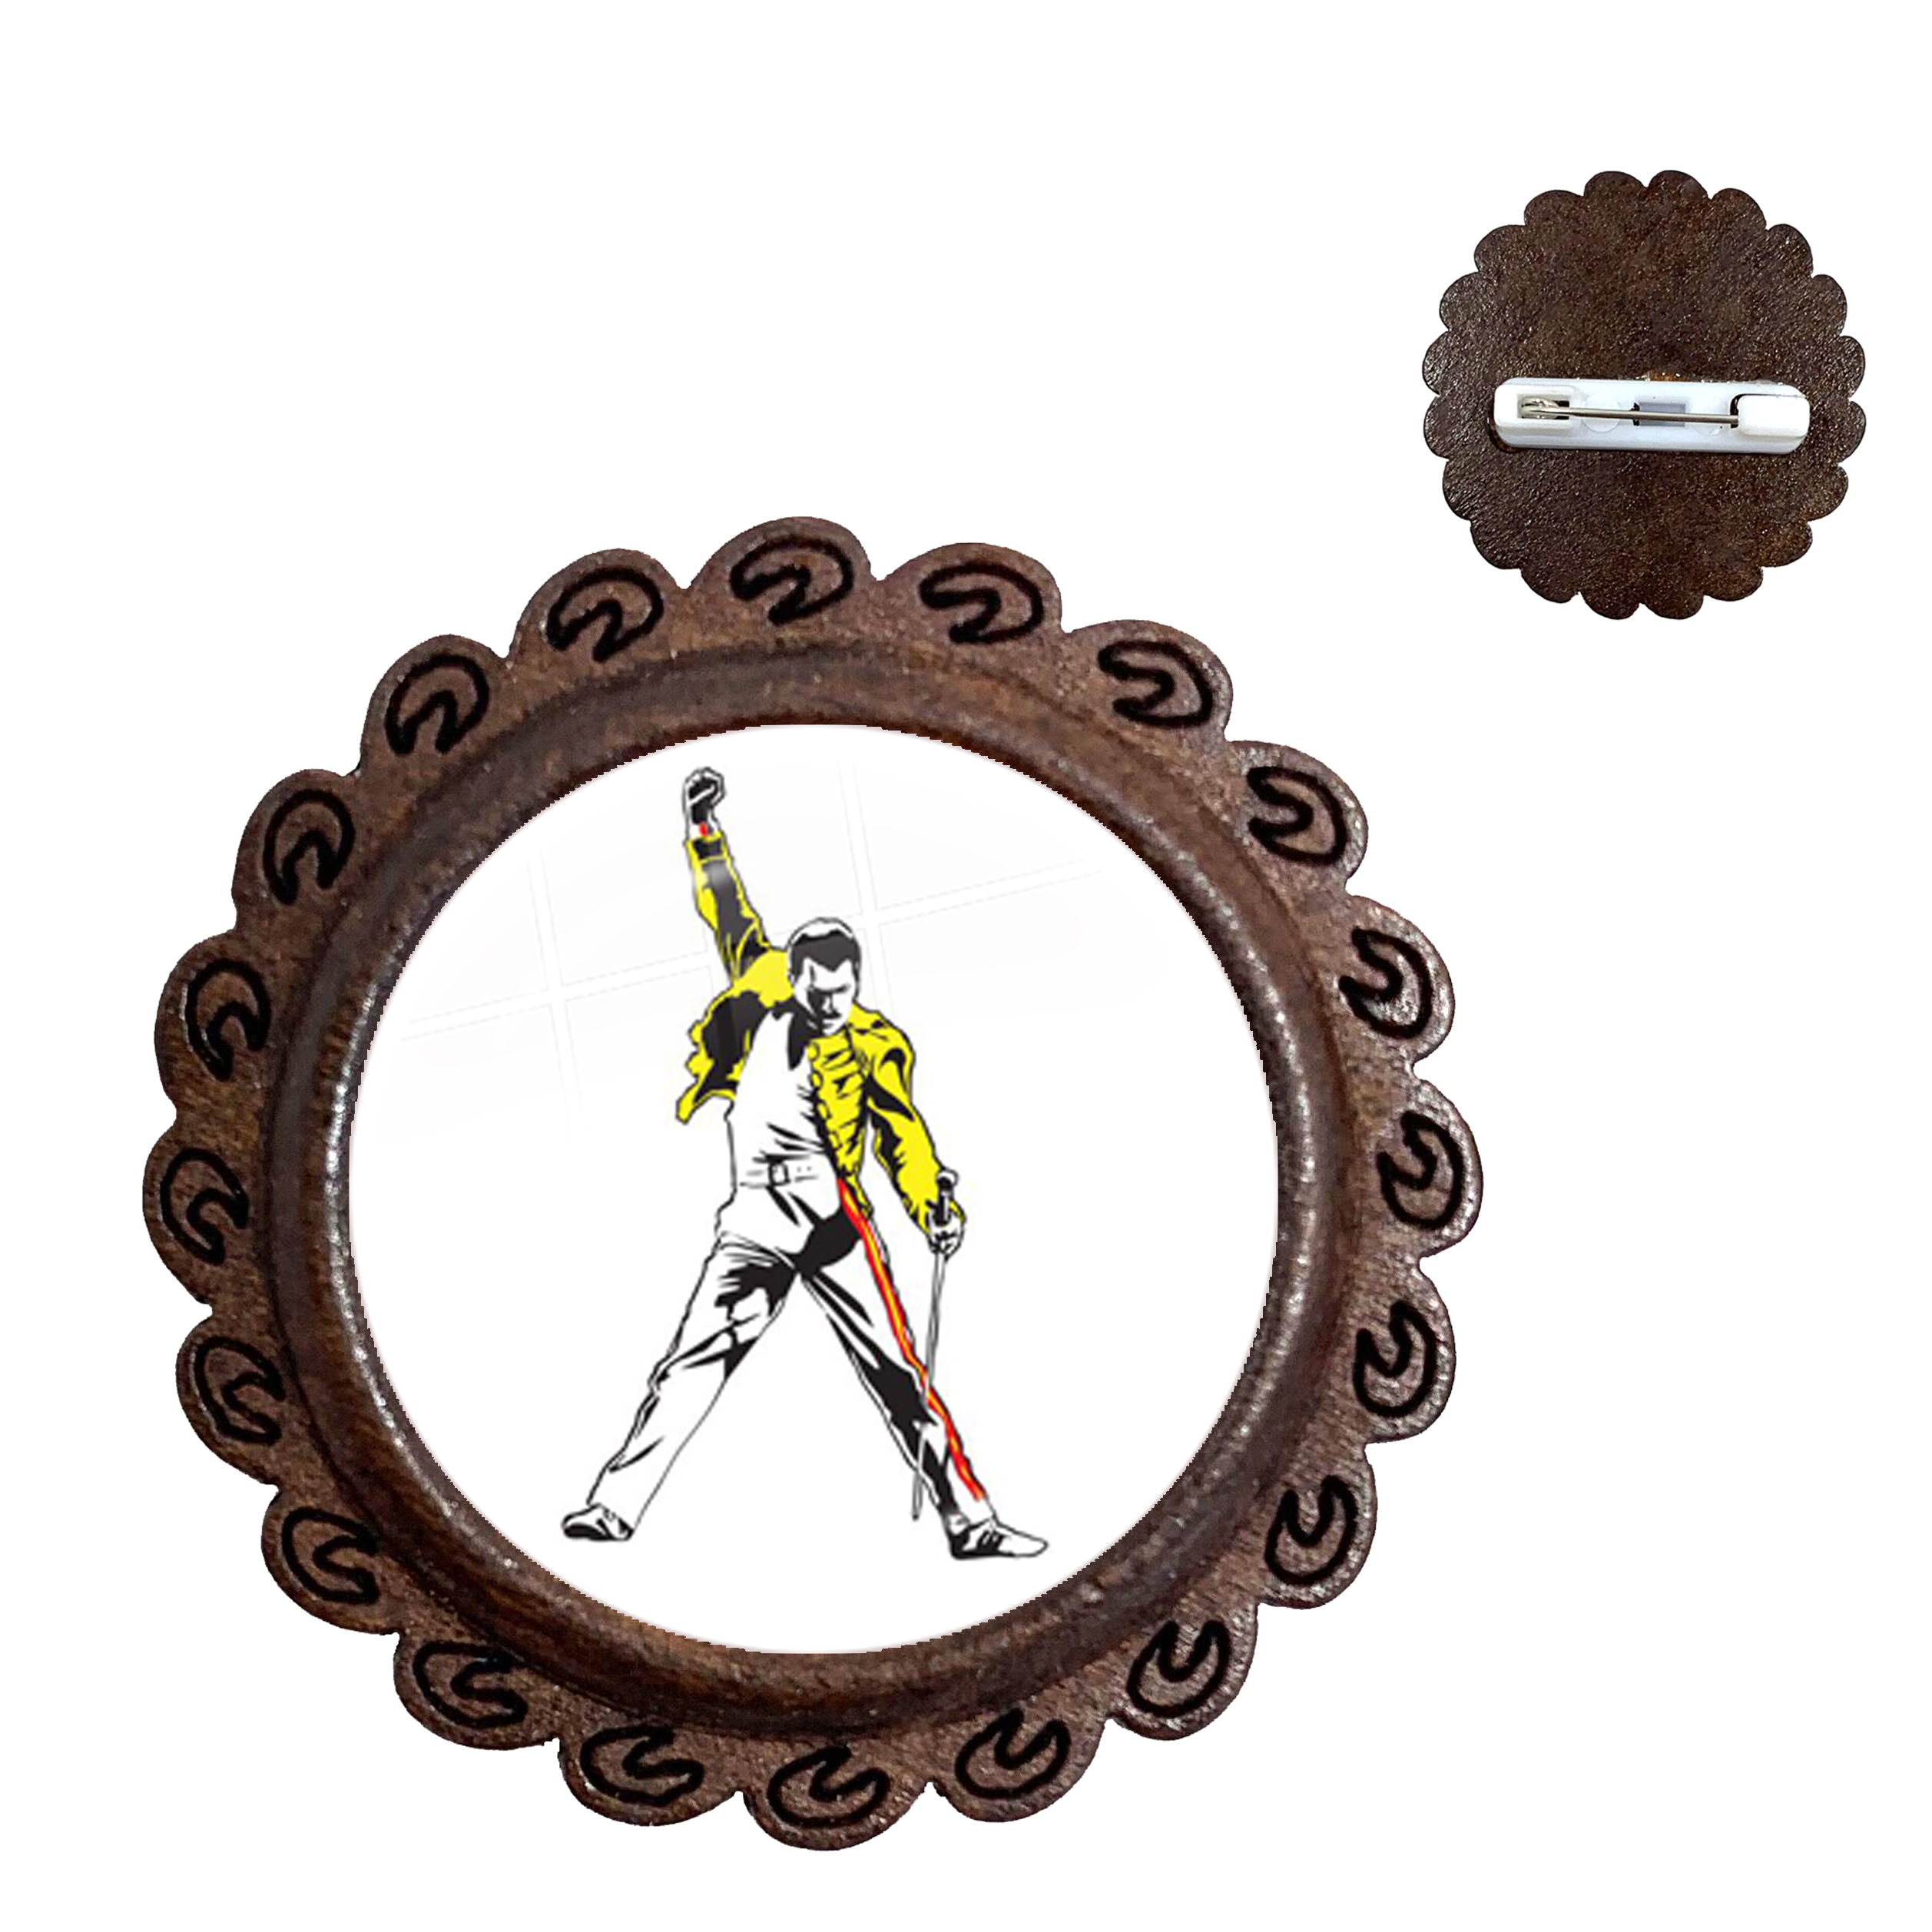 Retro Style 20mm Glass Cabochon Freddie Mercury Wood Brooches Cute Jewelry Accessories For Men Women Collar Pins Gift thumbnail